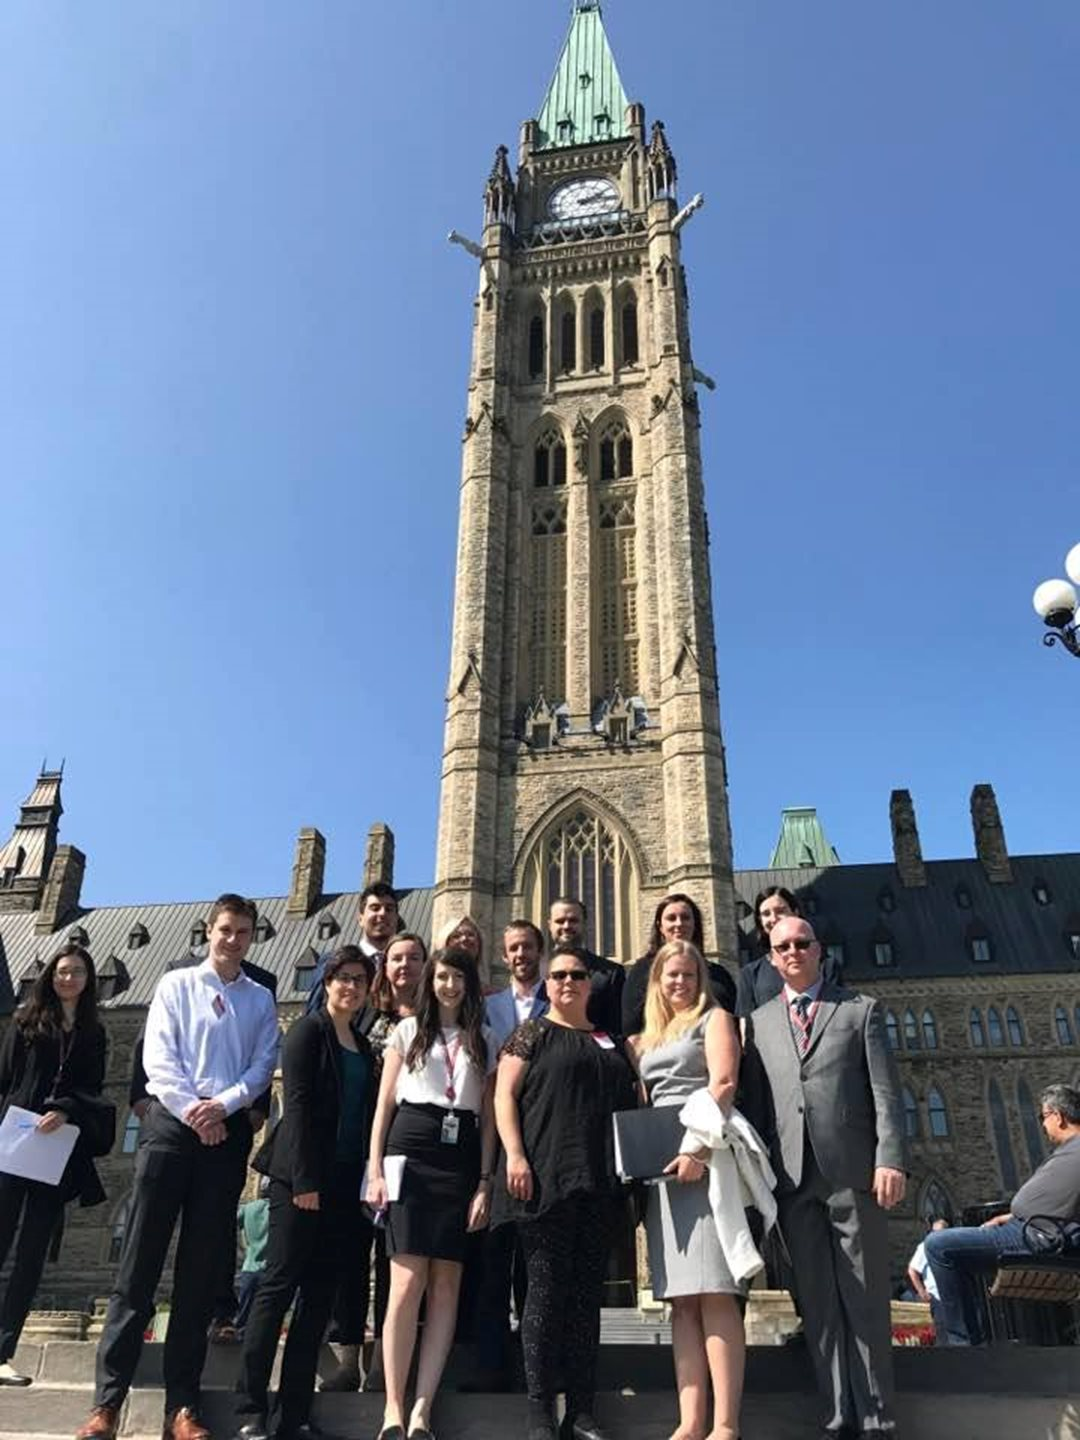 University of Ottawa students interning with Senator Pate come to work on Parliament Hill. The internship program provides an inside look at the legislative process and the work of parliamentarians.